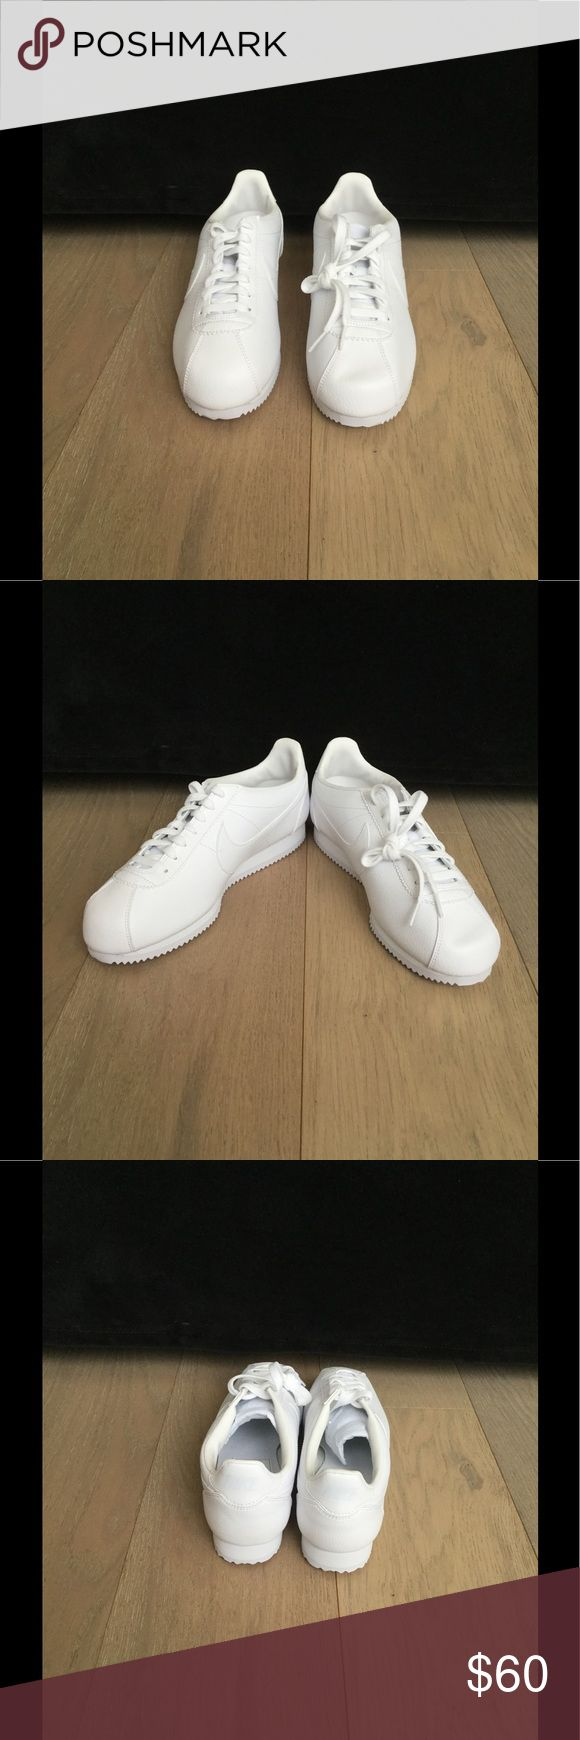 Nike Classic Cortez Leather Trainers In White Nike Classic Cortez Leather Trainers In White / Brand New No Box Nike Shoes Sneakers